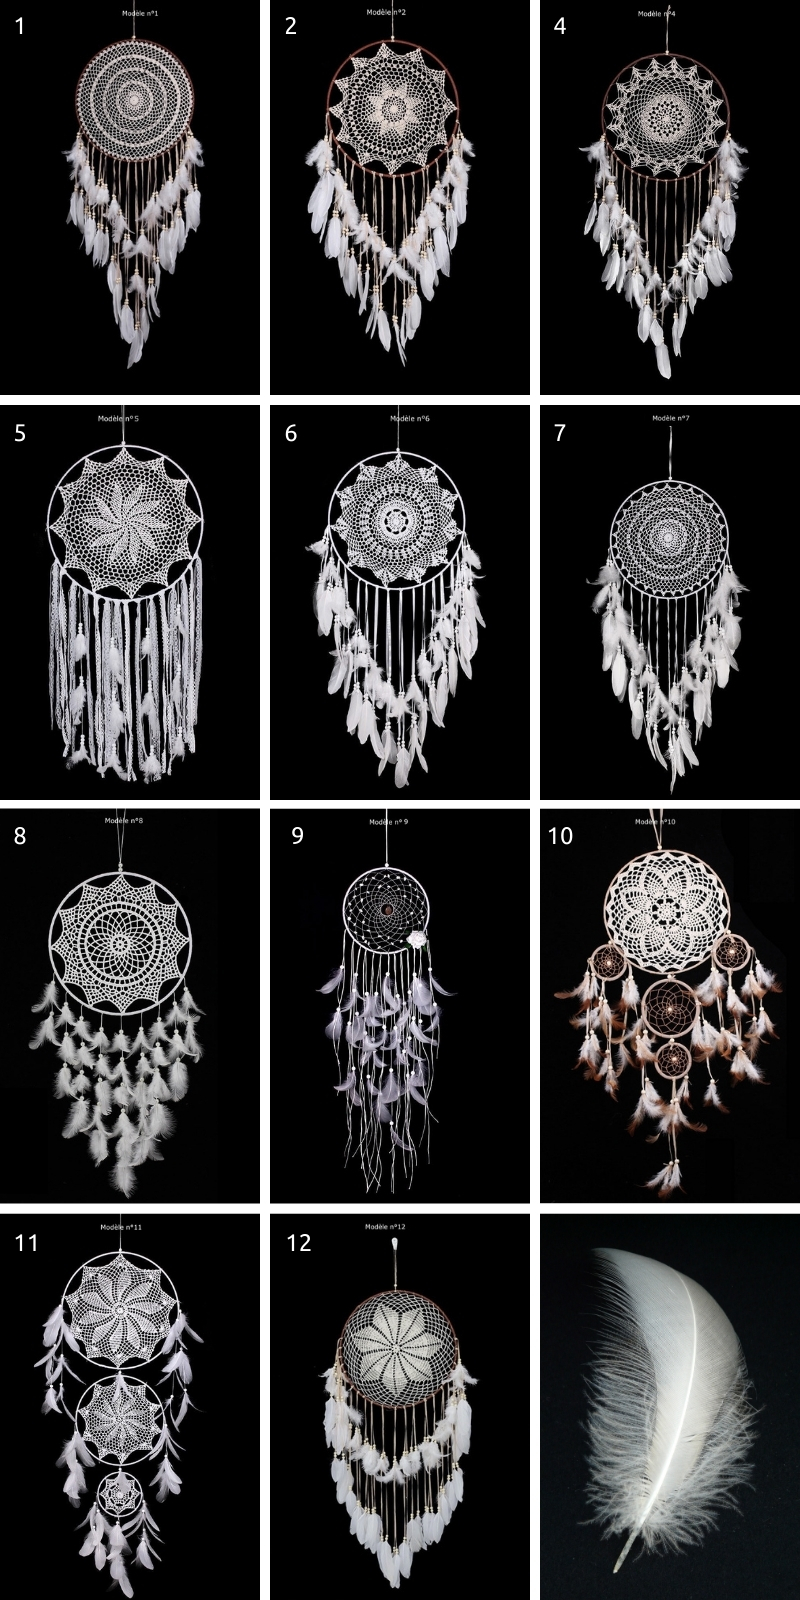 attrape-reve, capteur de reves, dreamcatcher